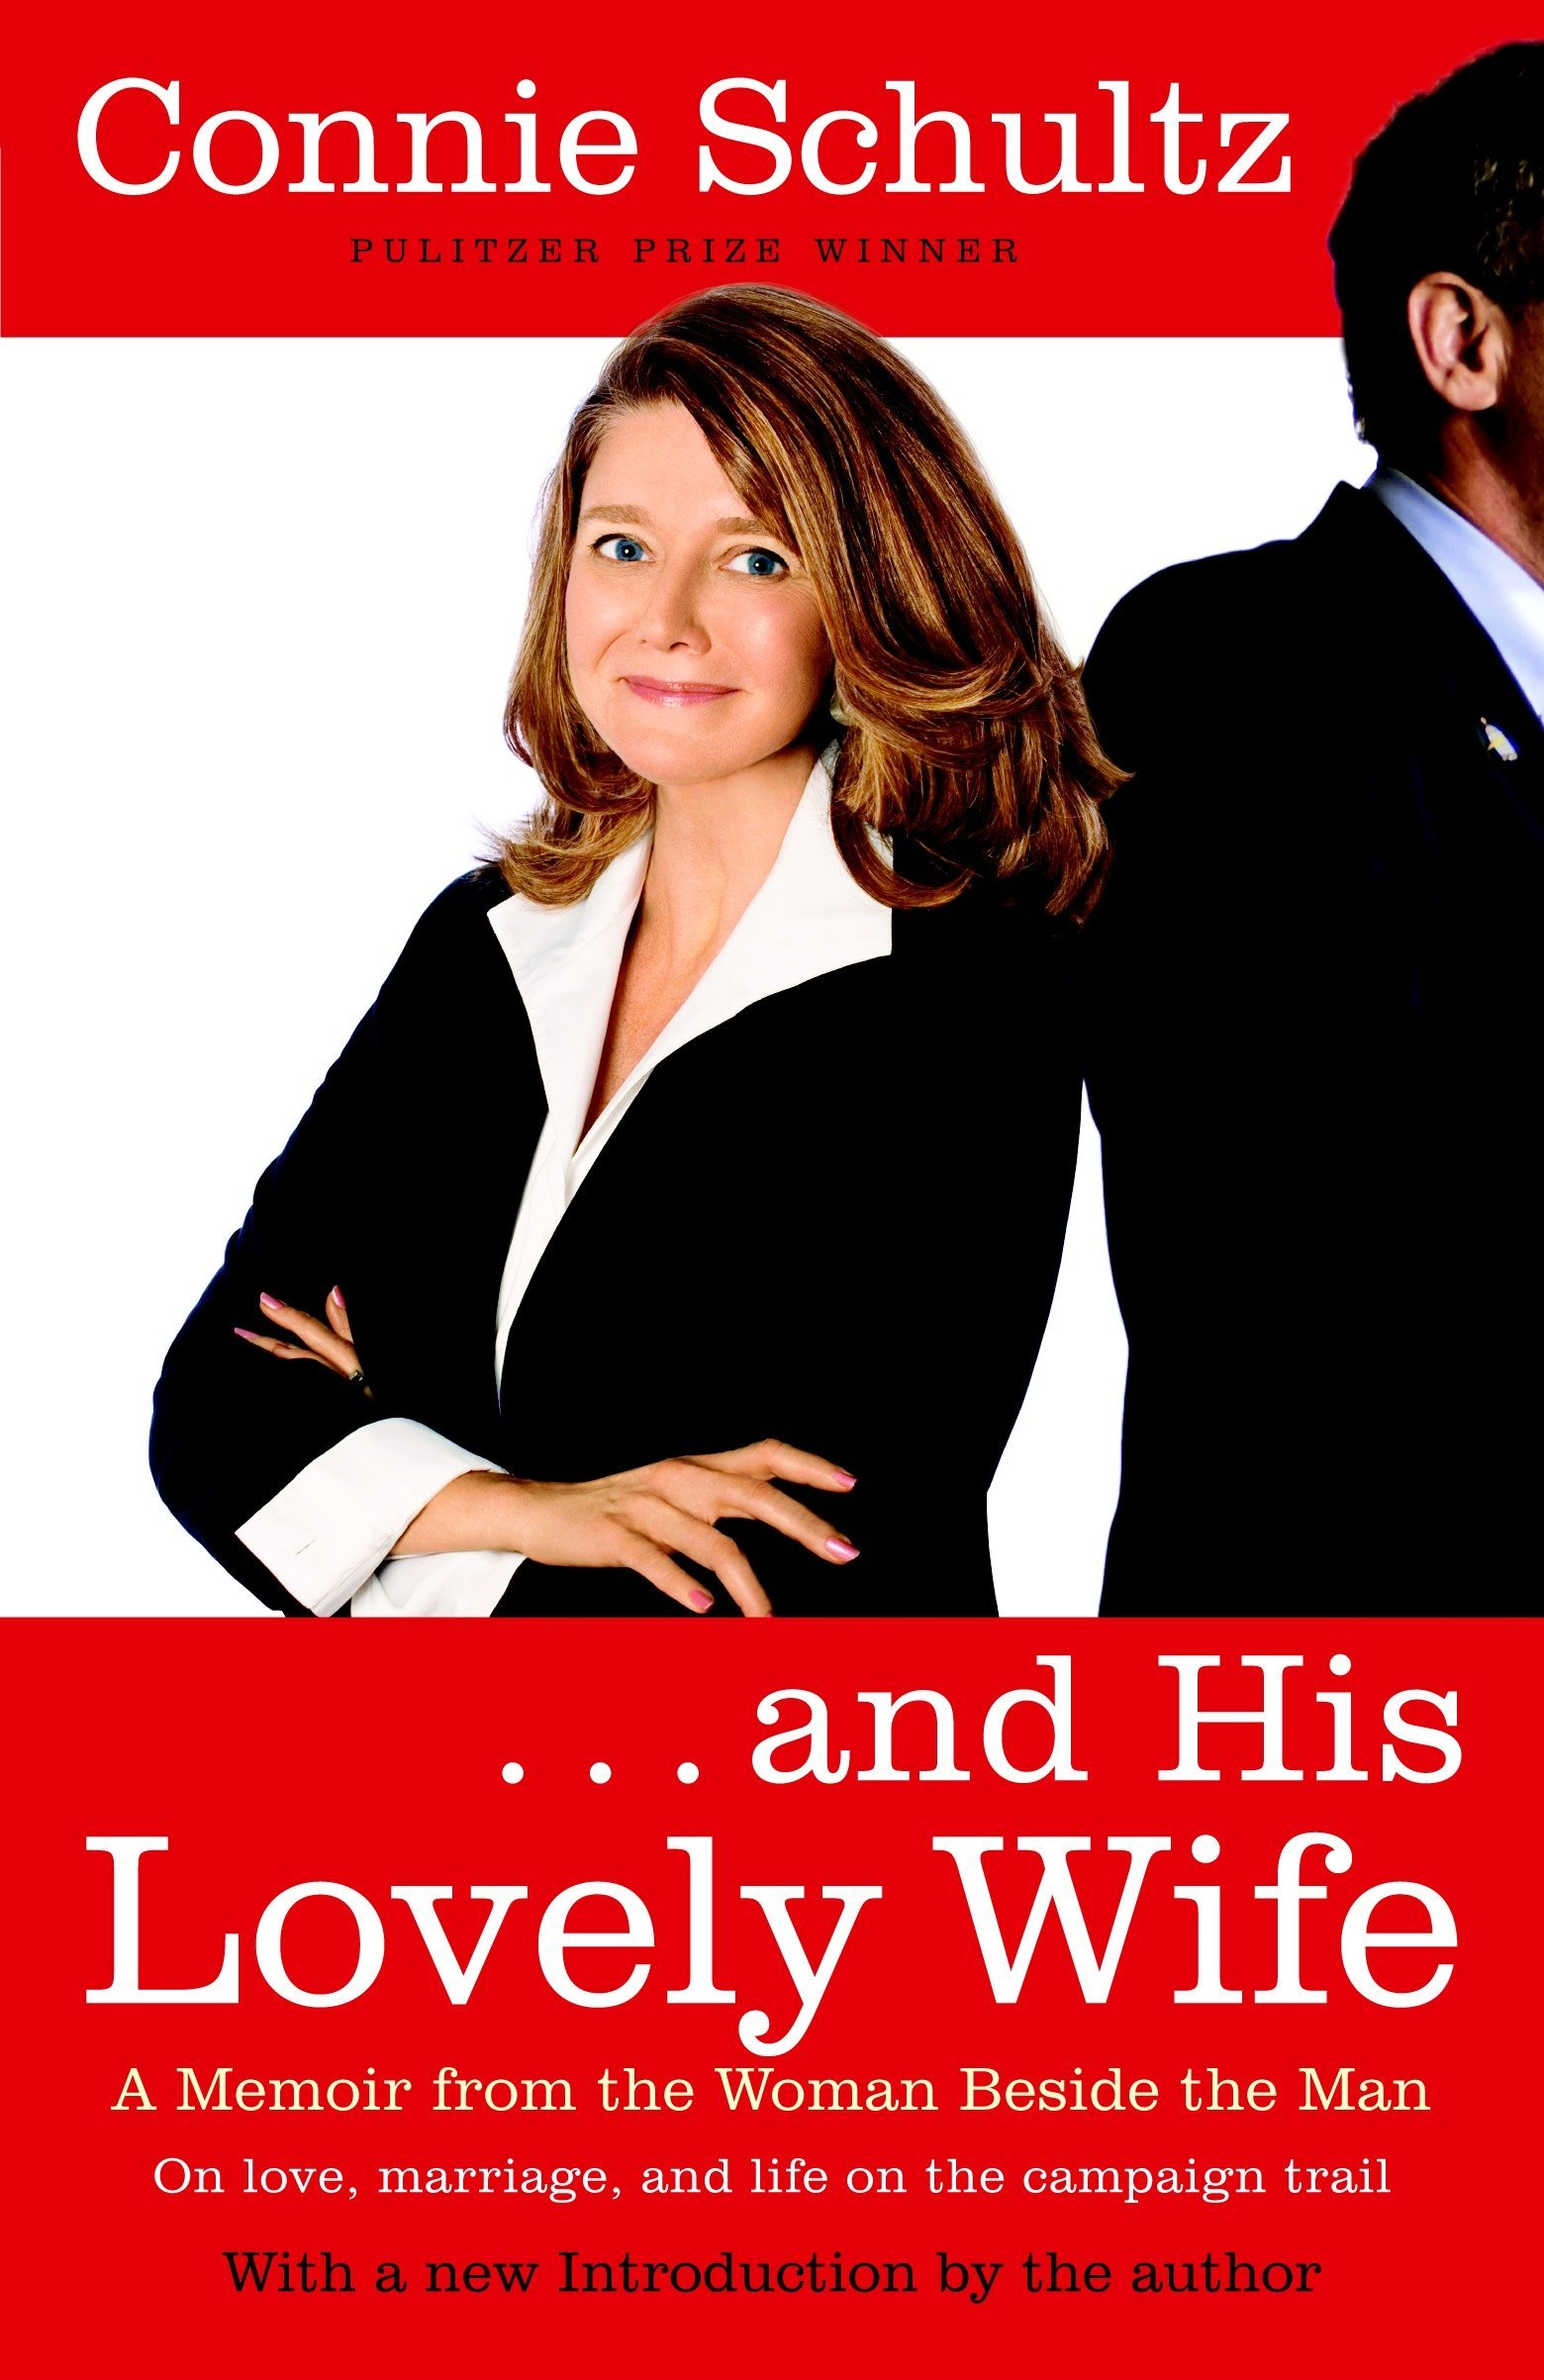 And His Lovely Wife A Campaign Memoir From The Woman Beside The Man